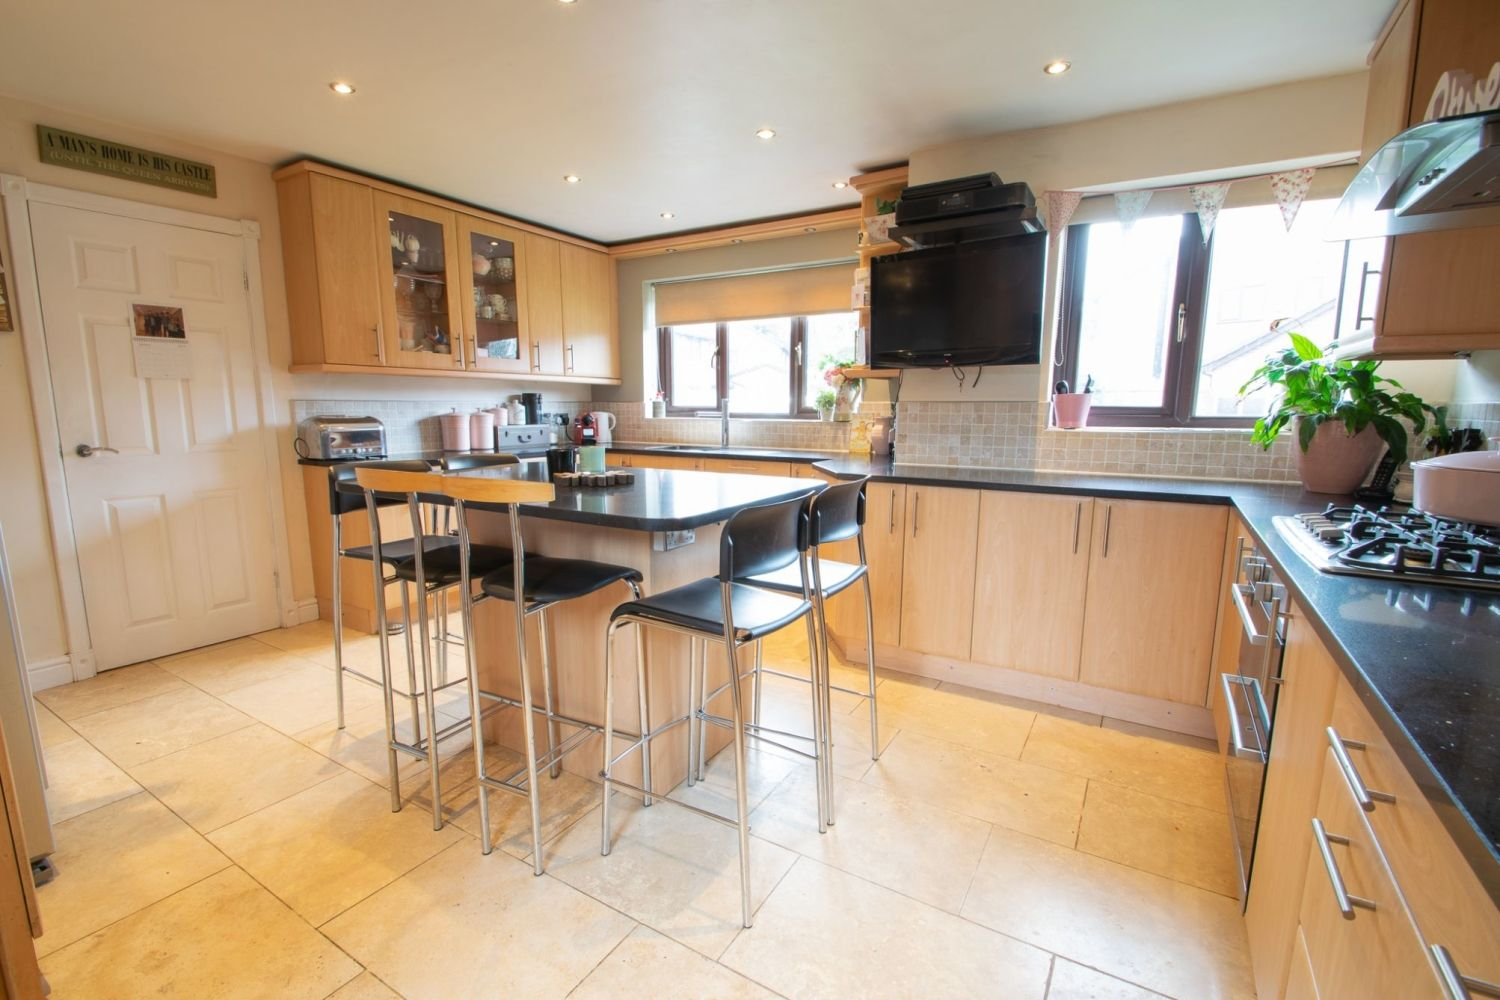 5 bed detached for sale in Melrose Avenue, Oldswinford, Stourbridge 3